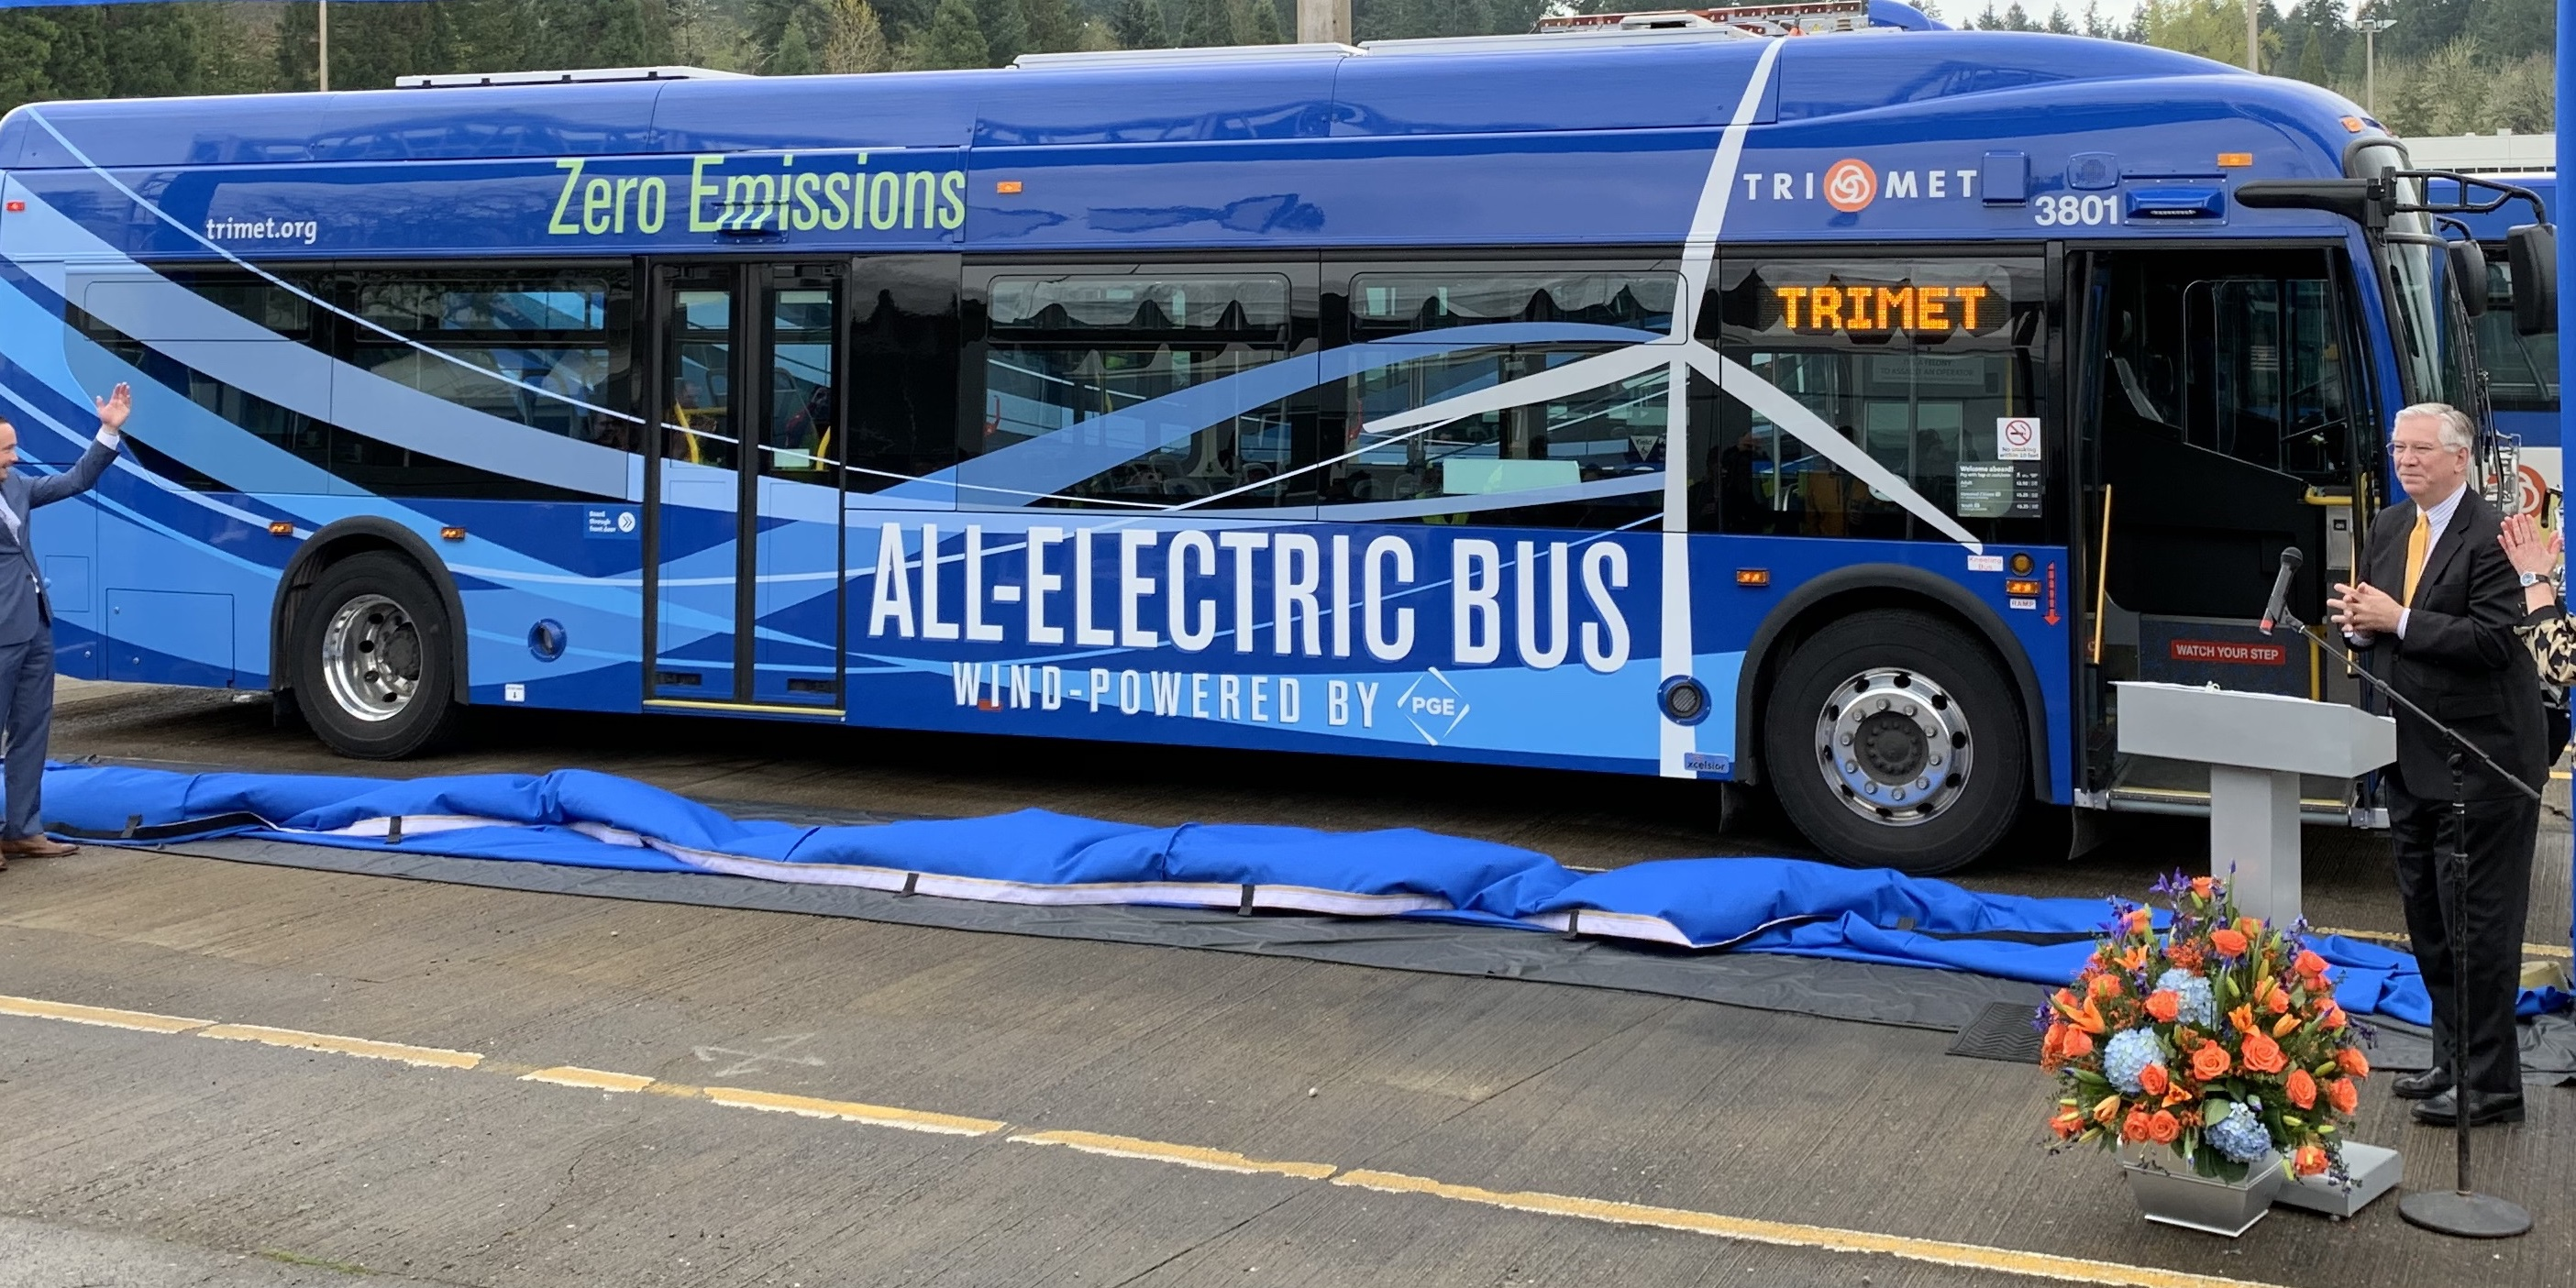 Portland's new electric buses run on wind energy, a first in US transit